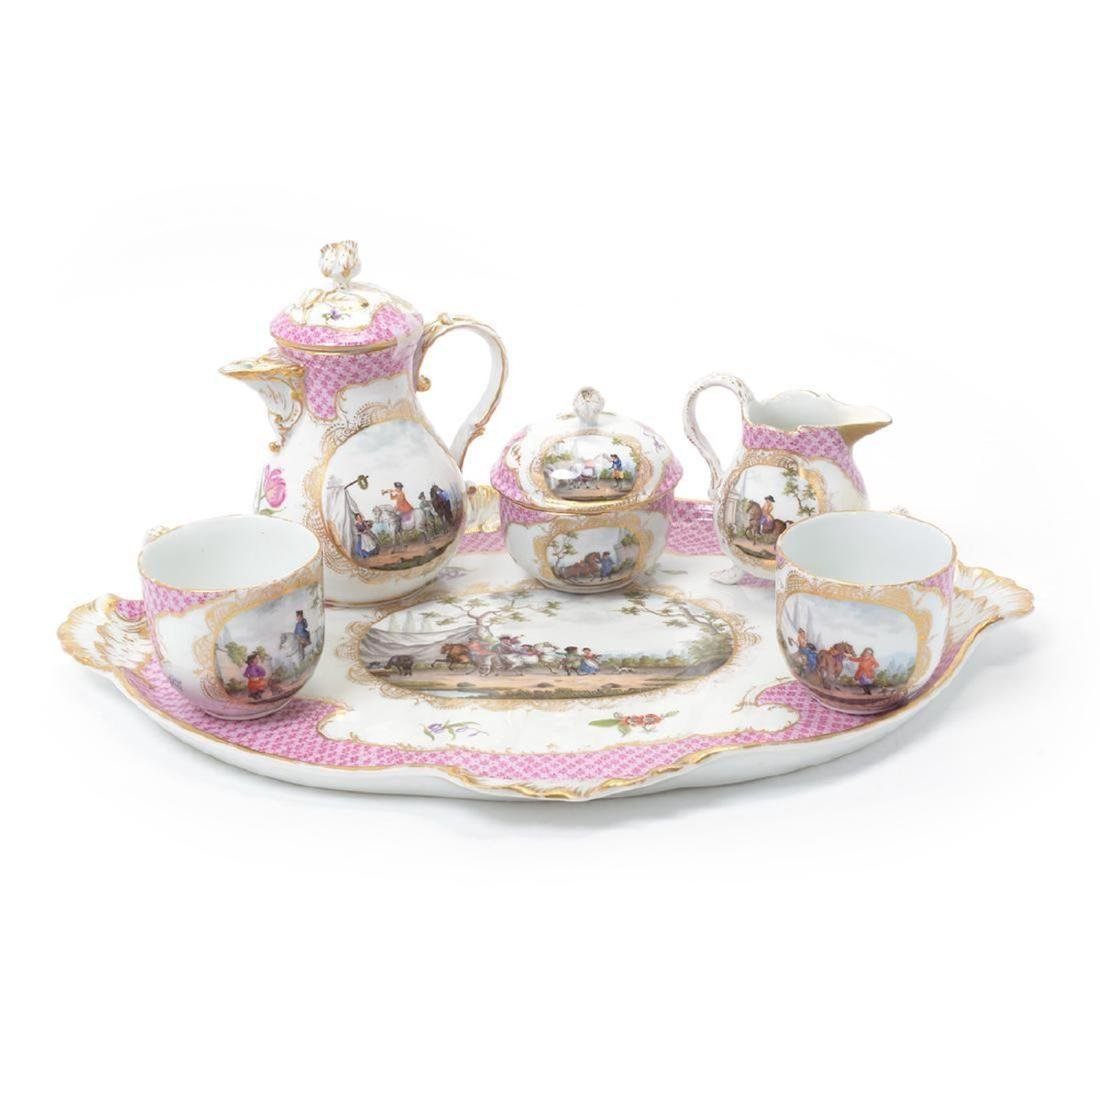 """Meissen"" Porcelain Tea Service/Tray (6 Pcs)"